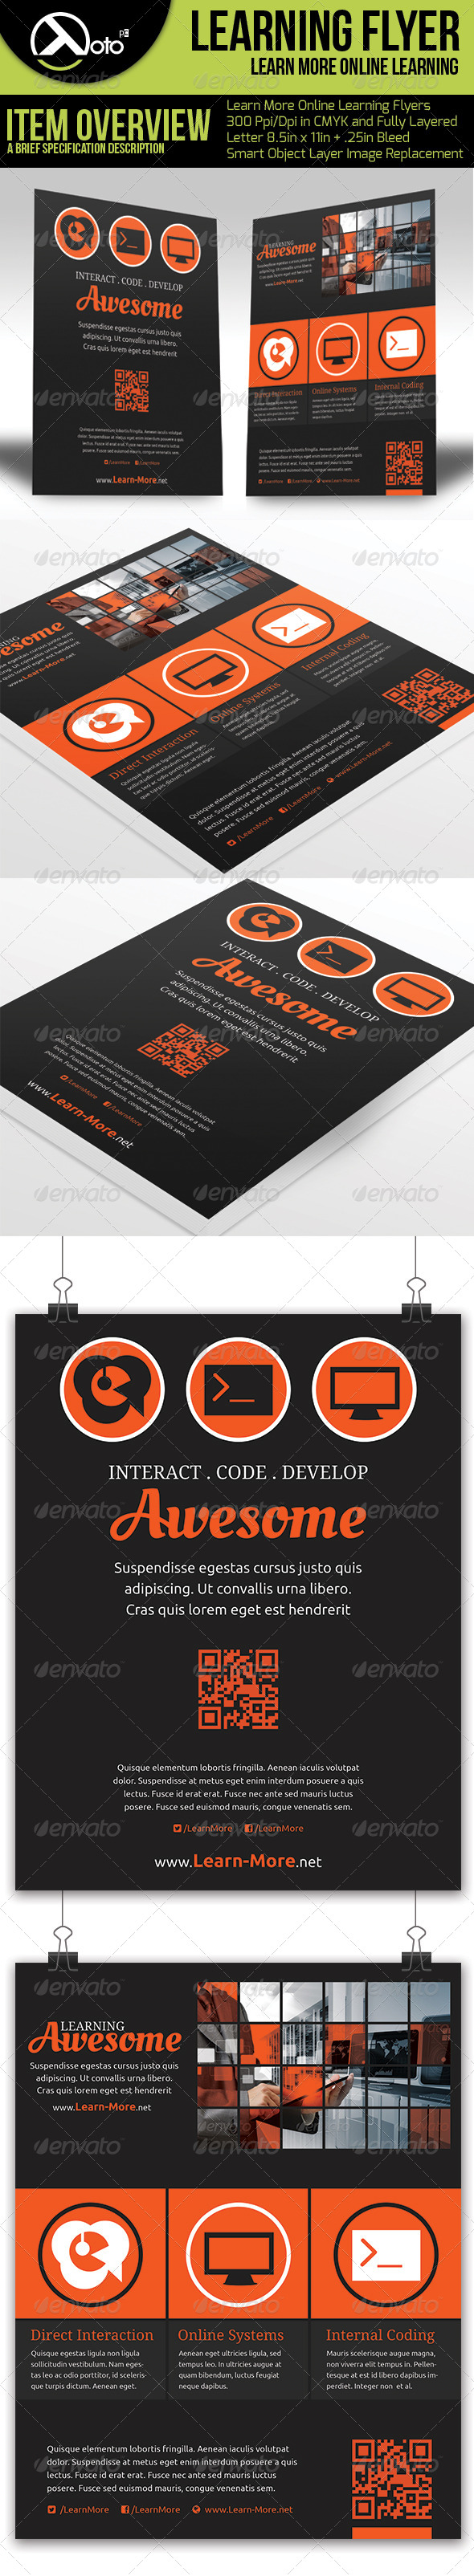 Learn More Online Learning Flyers - Flyers Print Templates